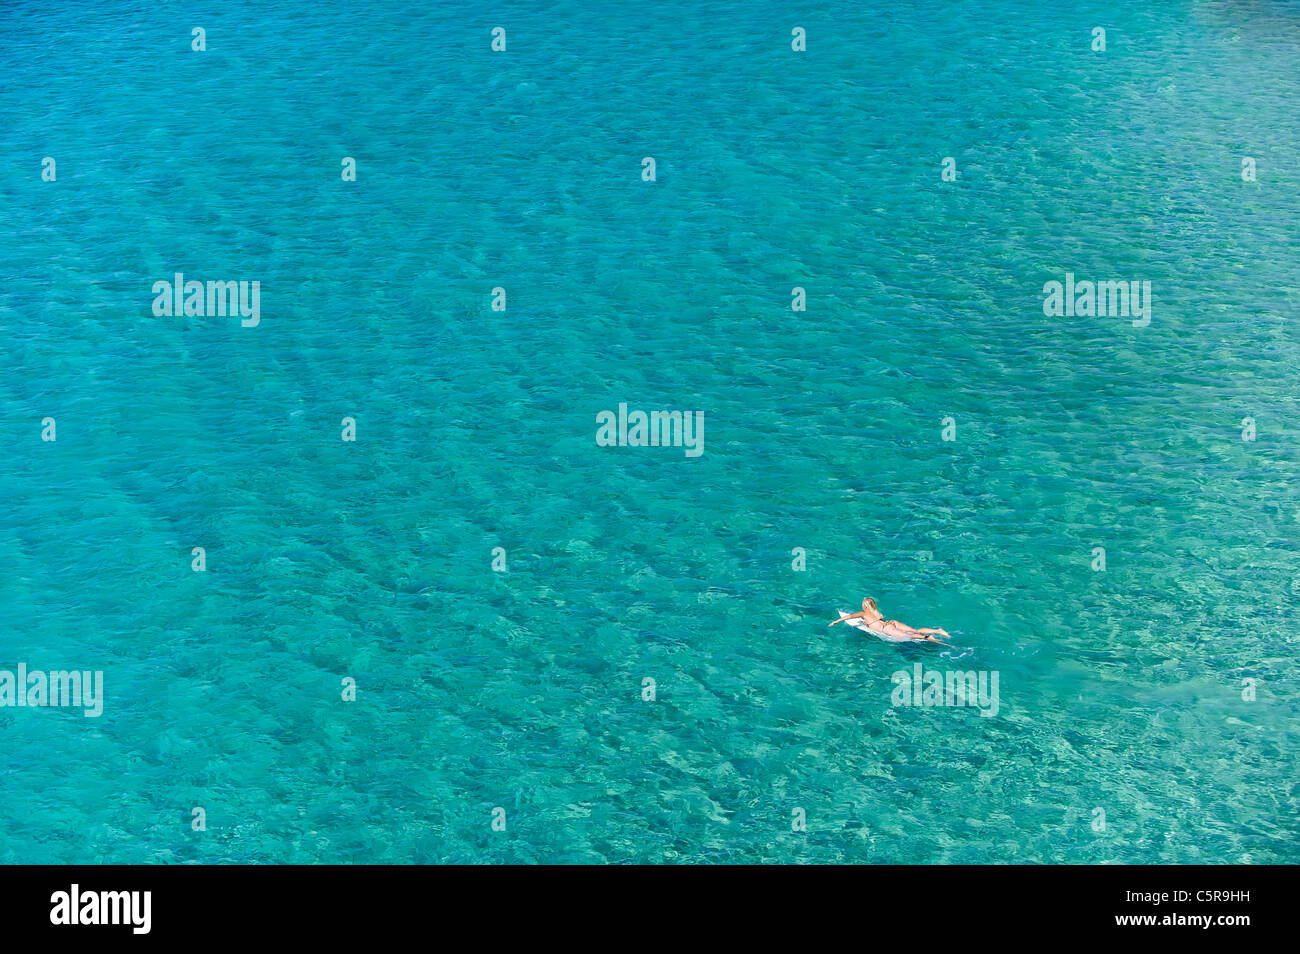 A surfer paddles her board out onto the Ocean. Stock Photo